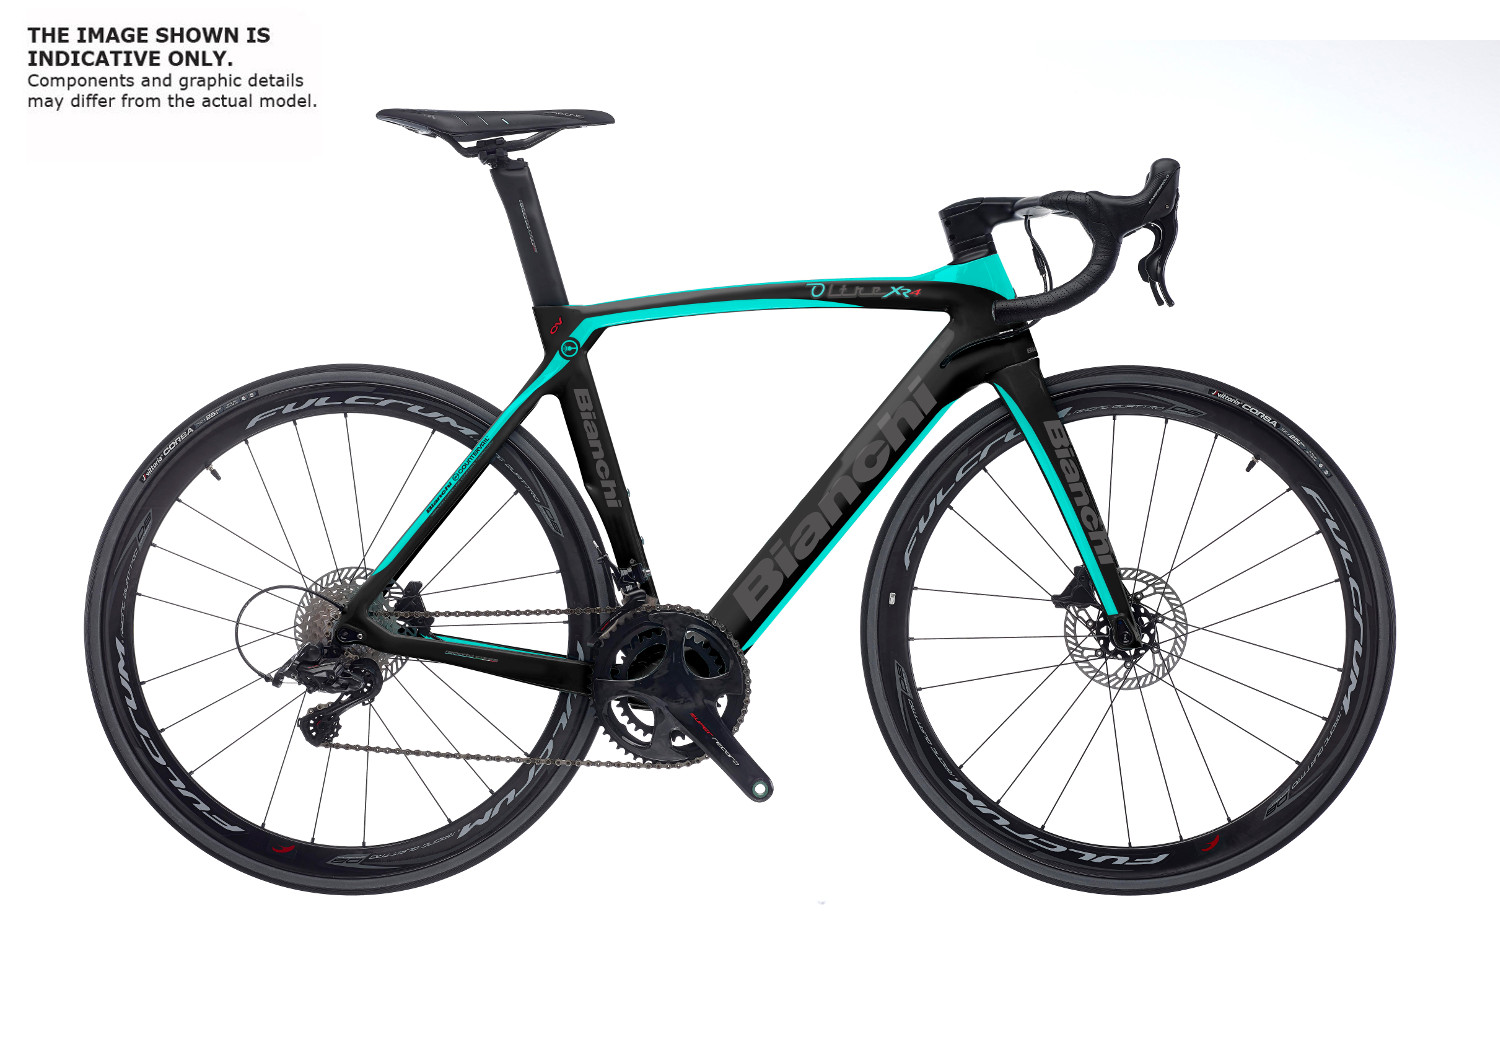 Bike (Racing) Bianchi Oltre XR4 Disc Ultegra Di2 11sp 52/36 - YOB17XBZ